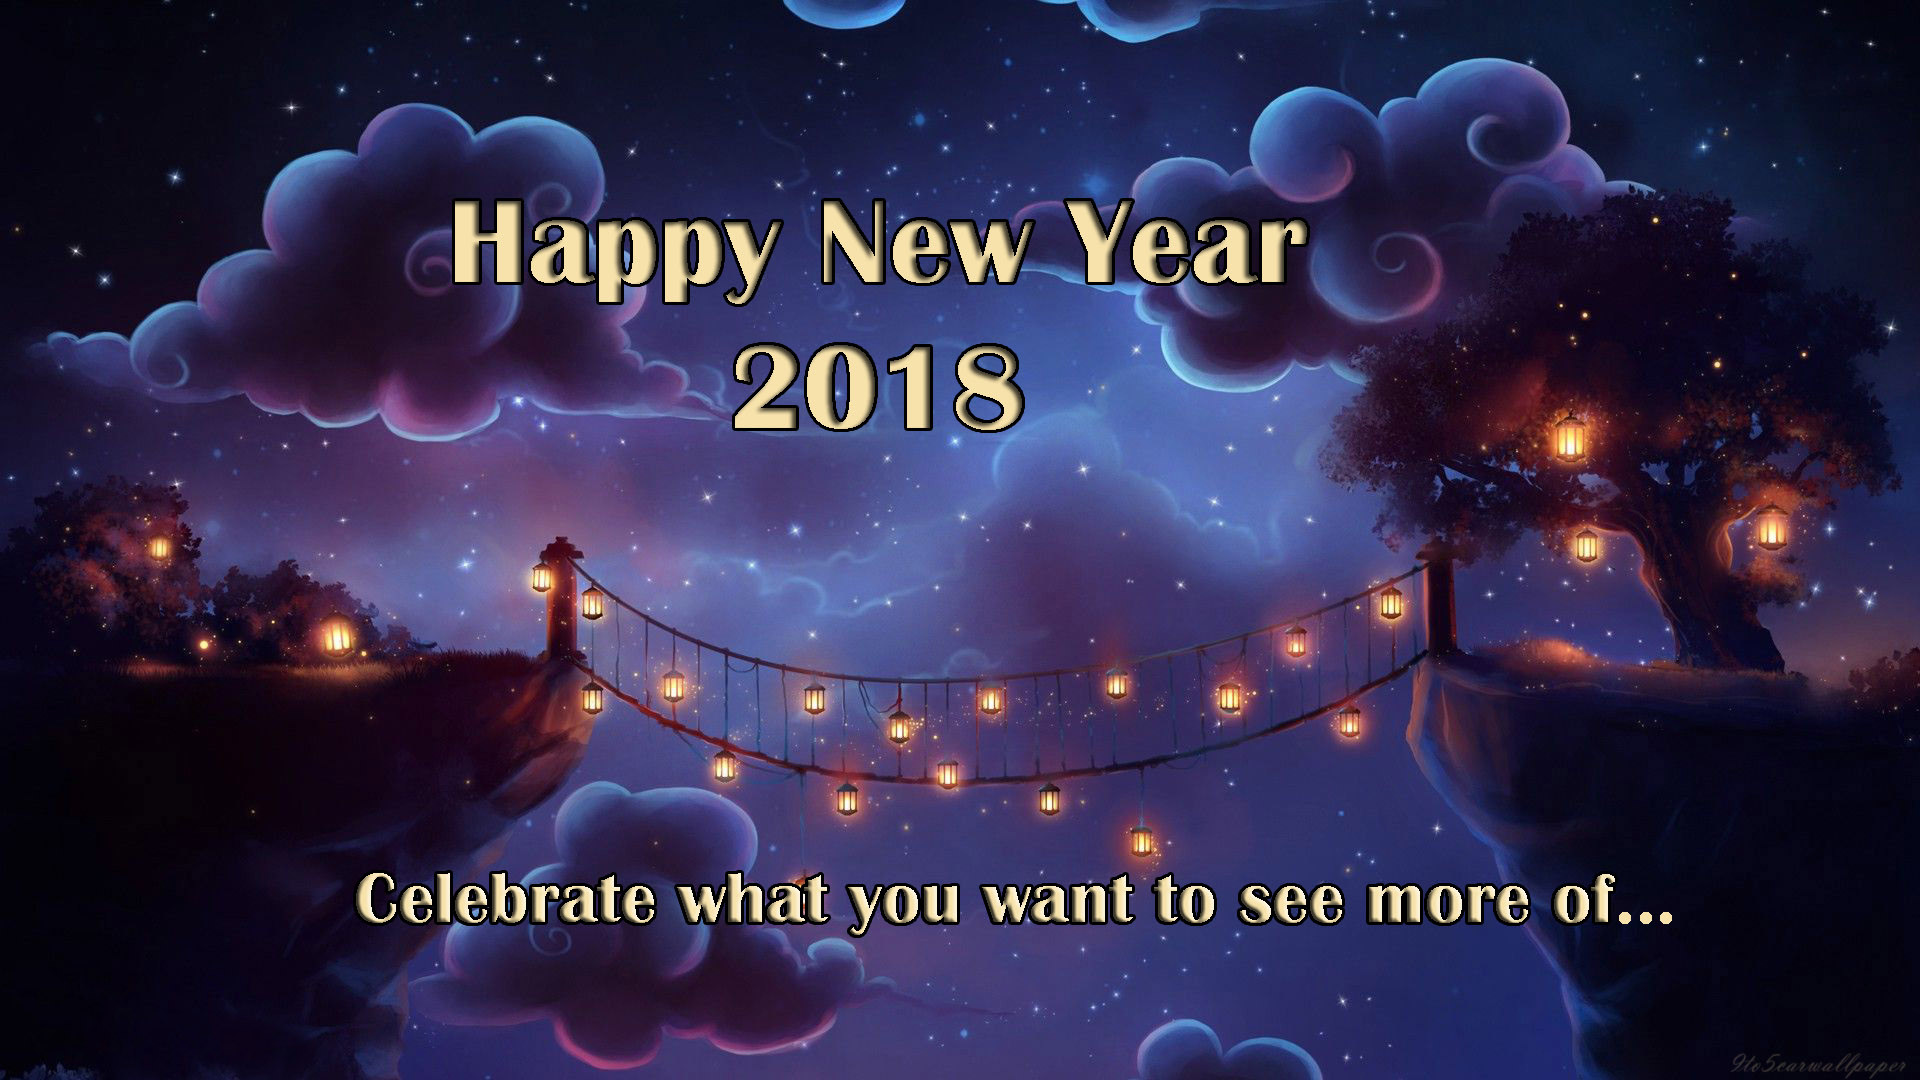 New Year Greetings Wallpapers 2018 (76+ background pictures)